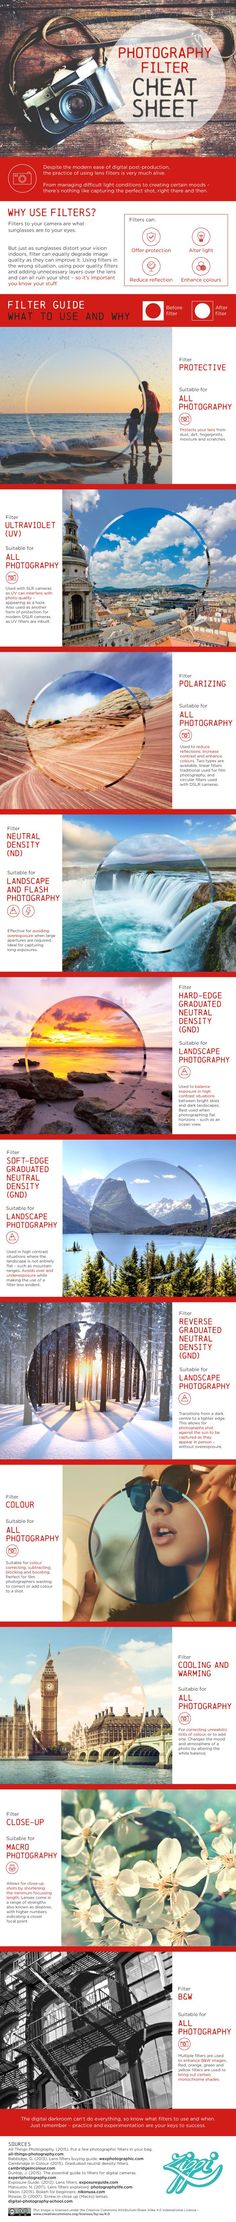 Landscape Photography Tips: Photography Filters - A Cheat Sheet Photography Cheat Sheets, Photography Filters, Photography Basics, Photography Lessons, Photoshop Photography, Photography Editing, Photography Business, Photography Tutorials, Digital Photography